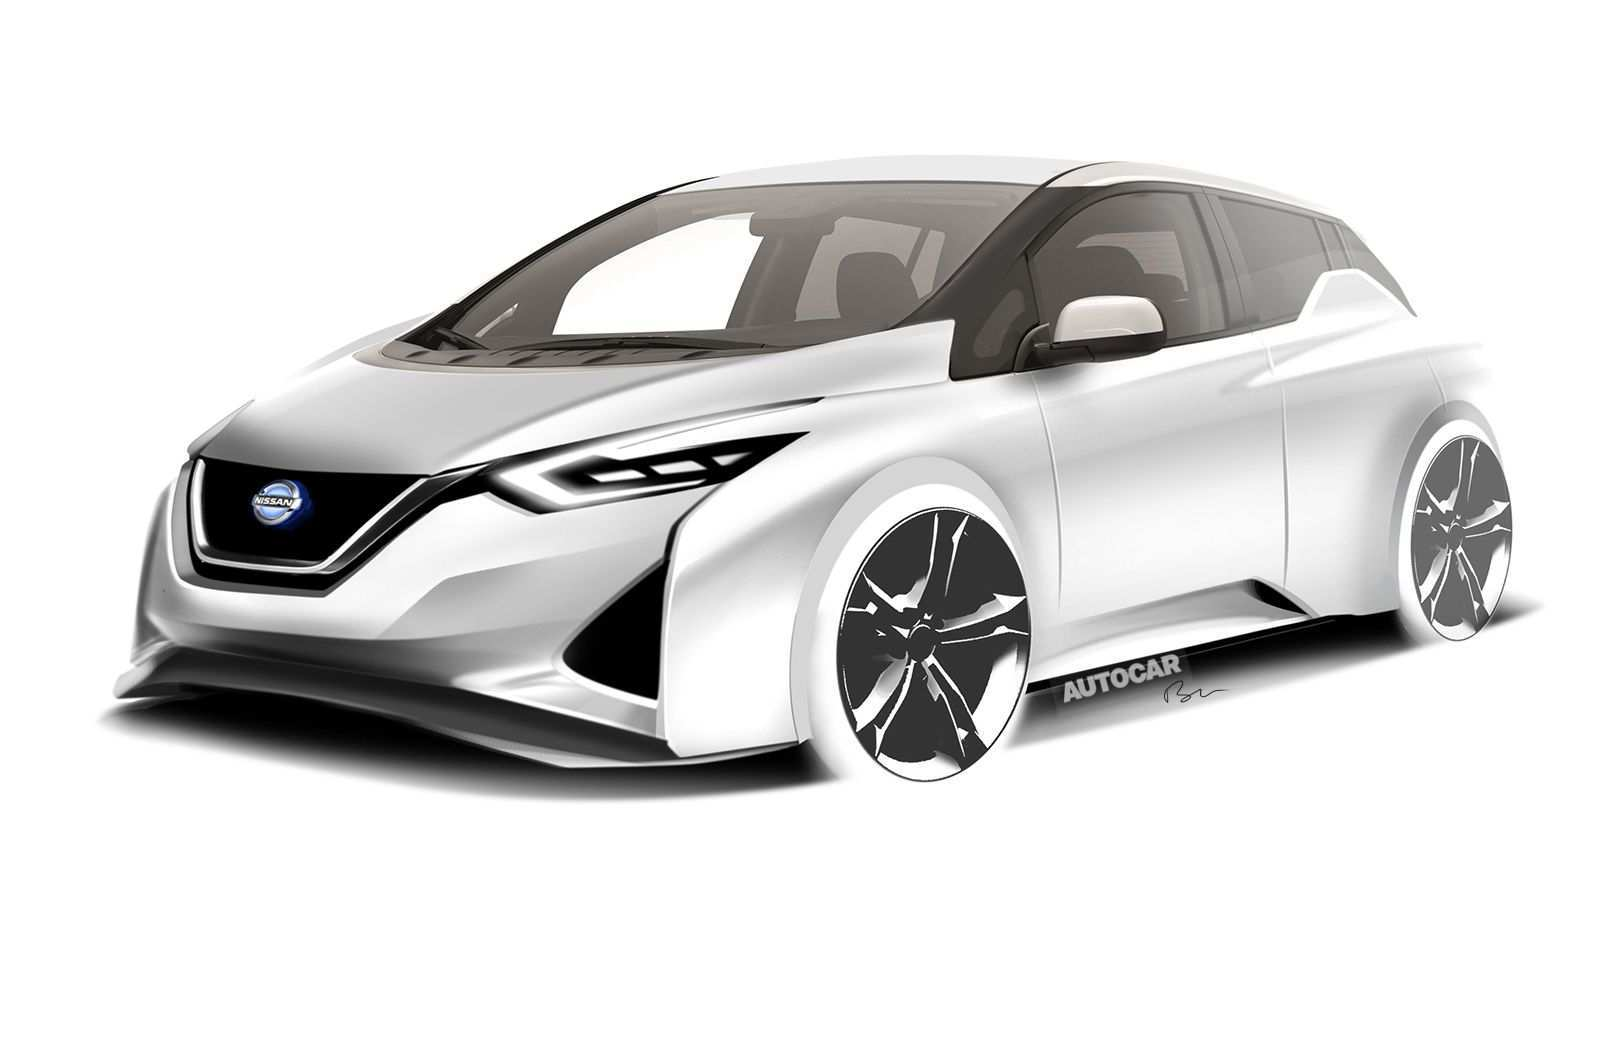 85 All New 2020 Nissan Leaf Price Photos by 2020 Nissan Leaf Price